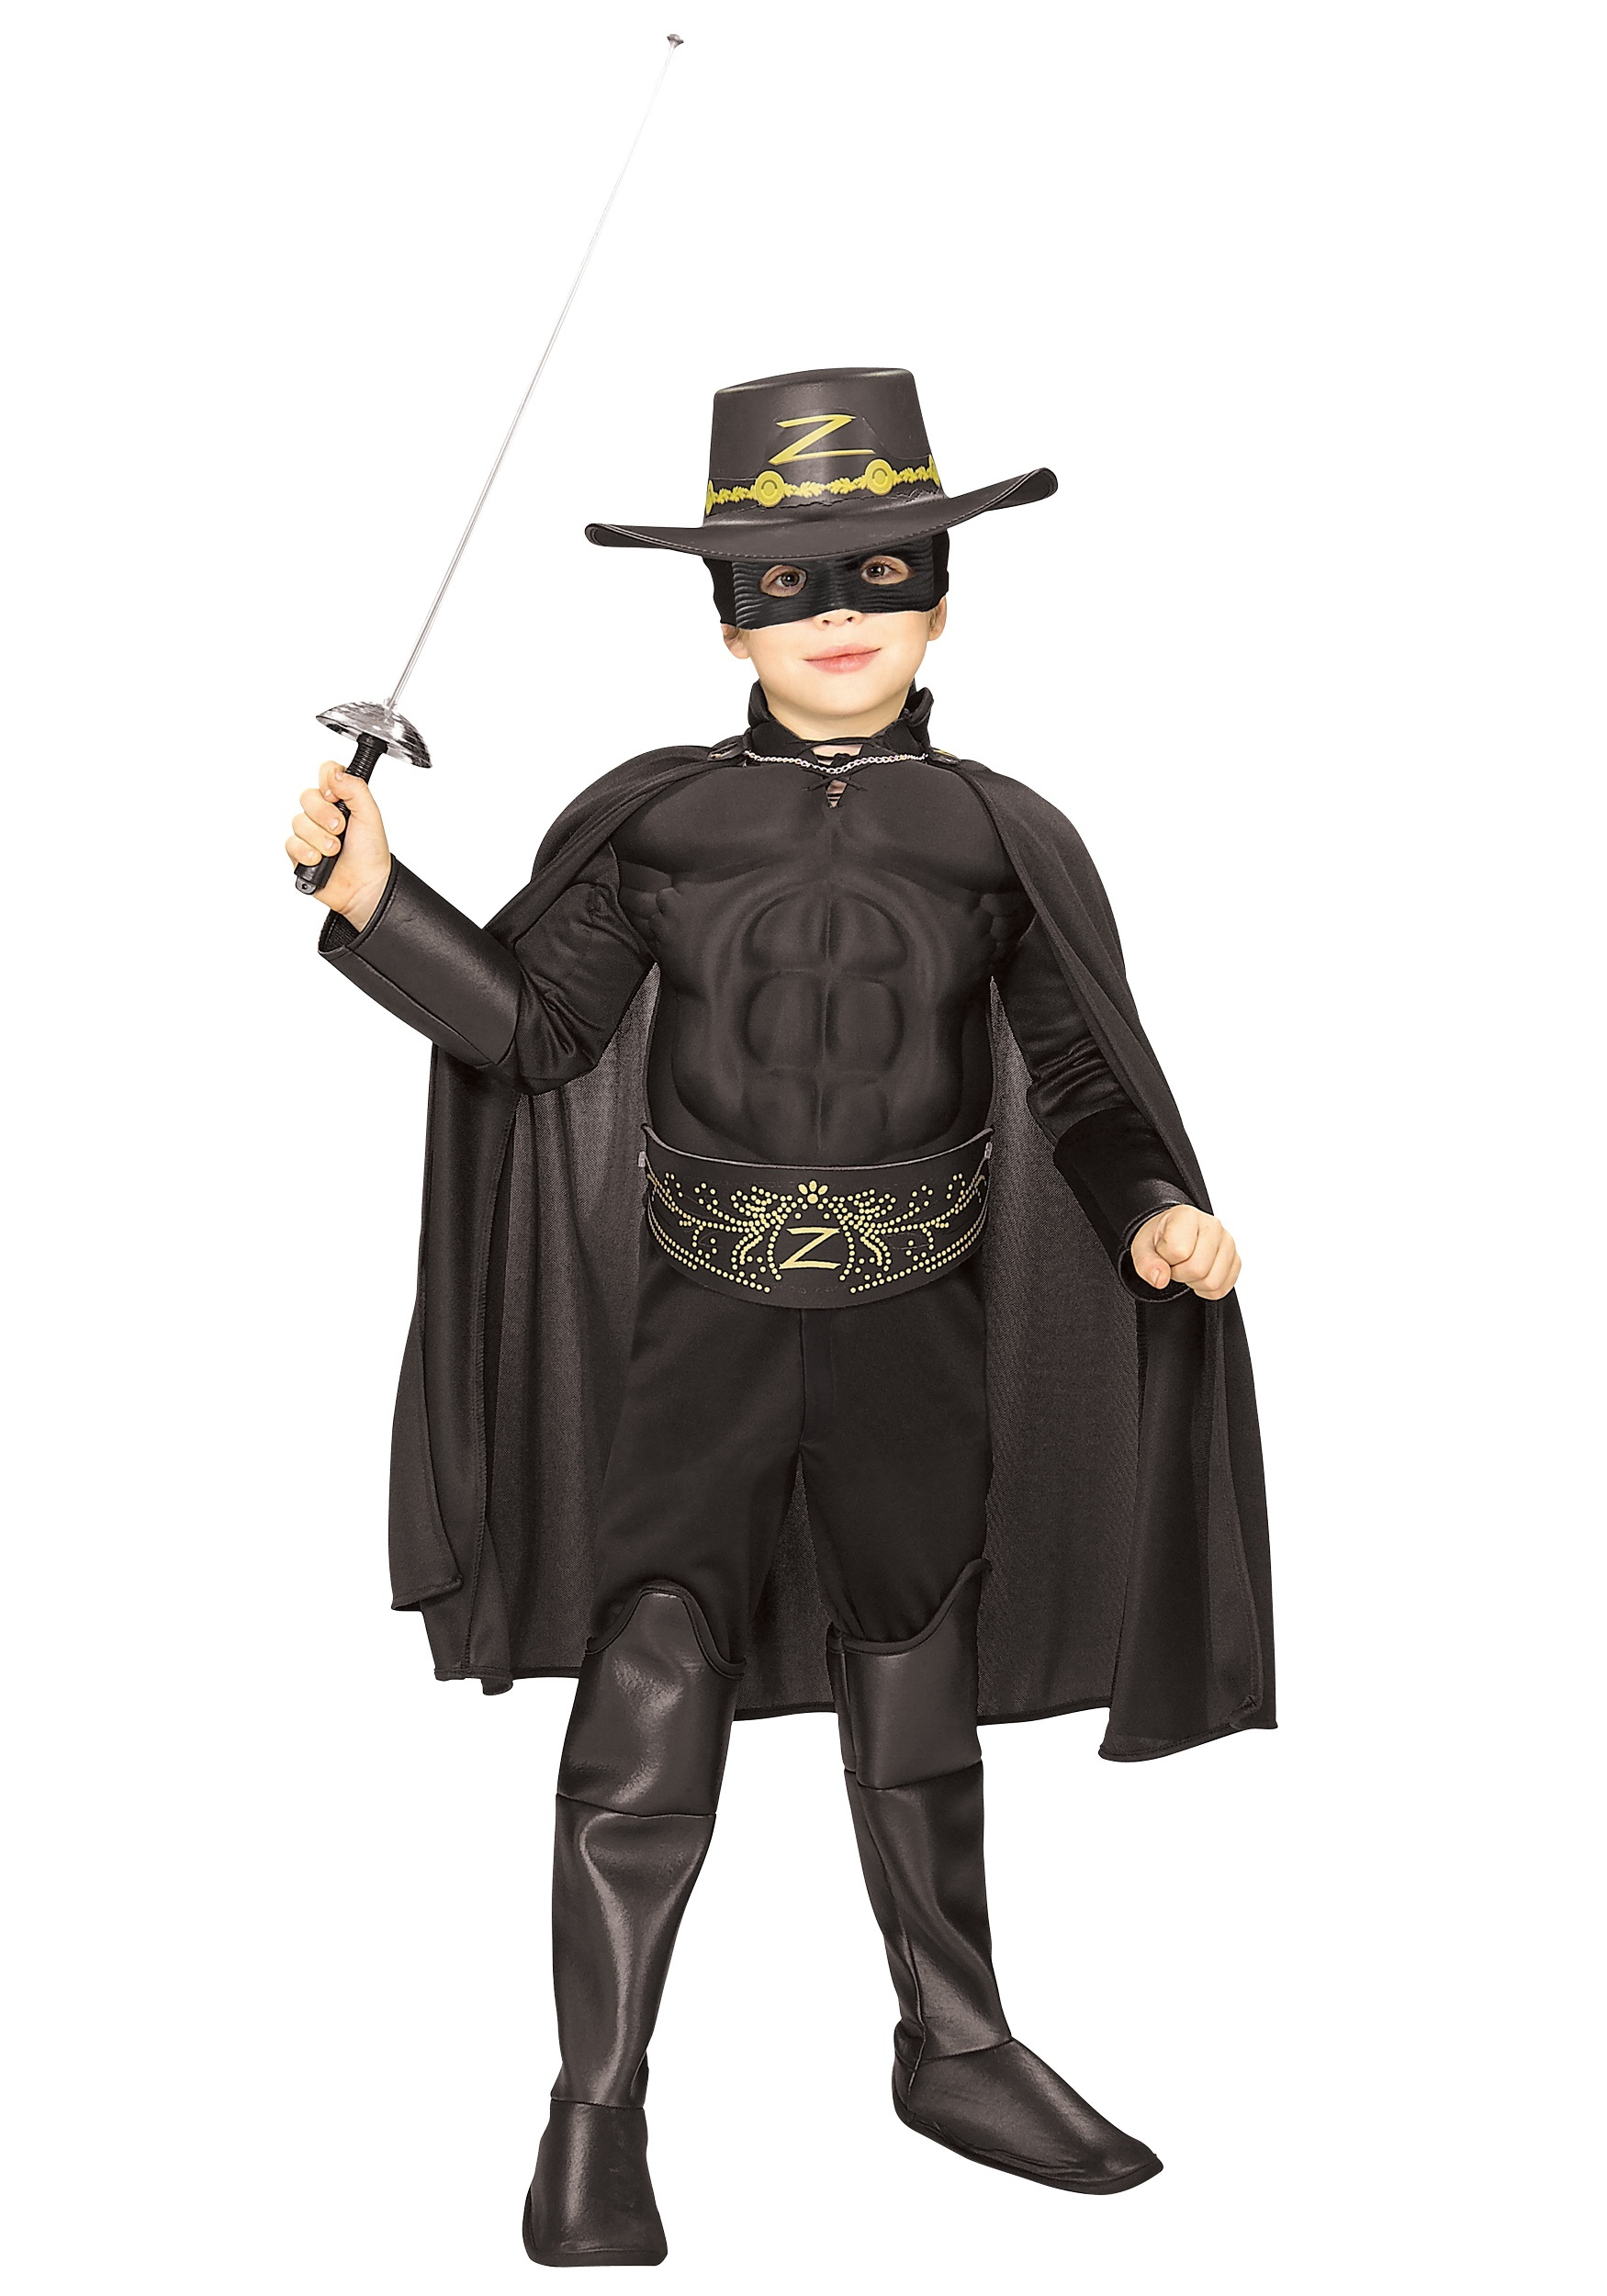 sc 1 st  Halloween Costumes : women zorro costume  - Germanpascual.Com